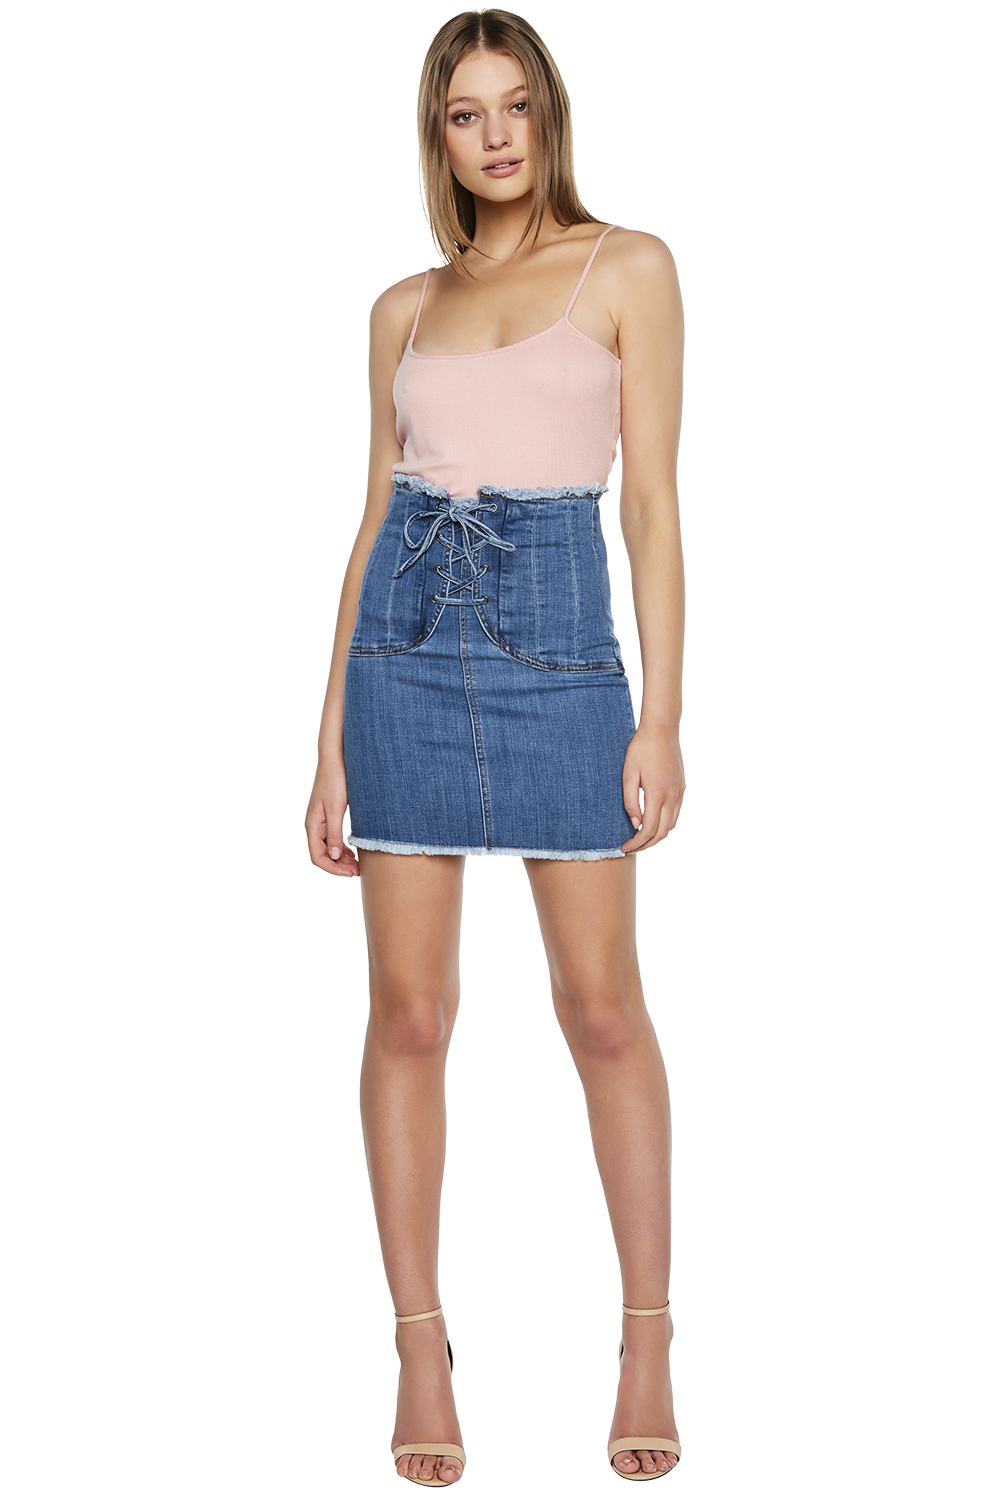 size 7 get new discount up to 60% CORSET DENIM SKIRT